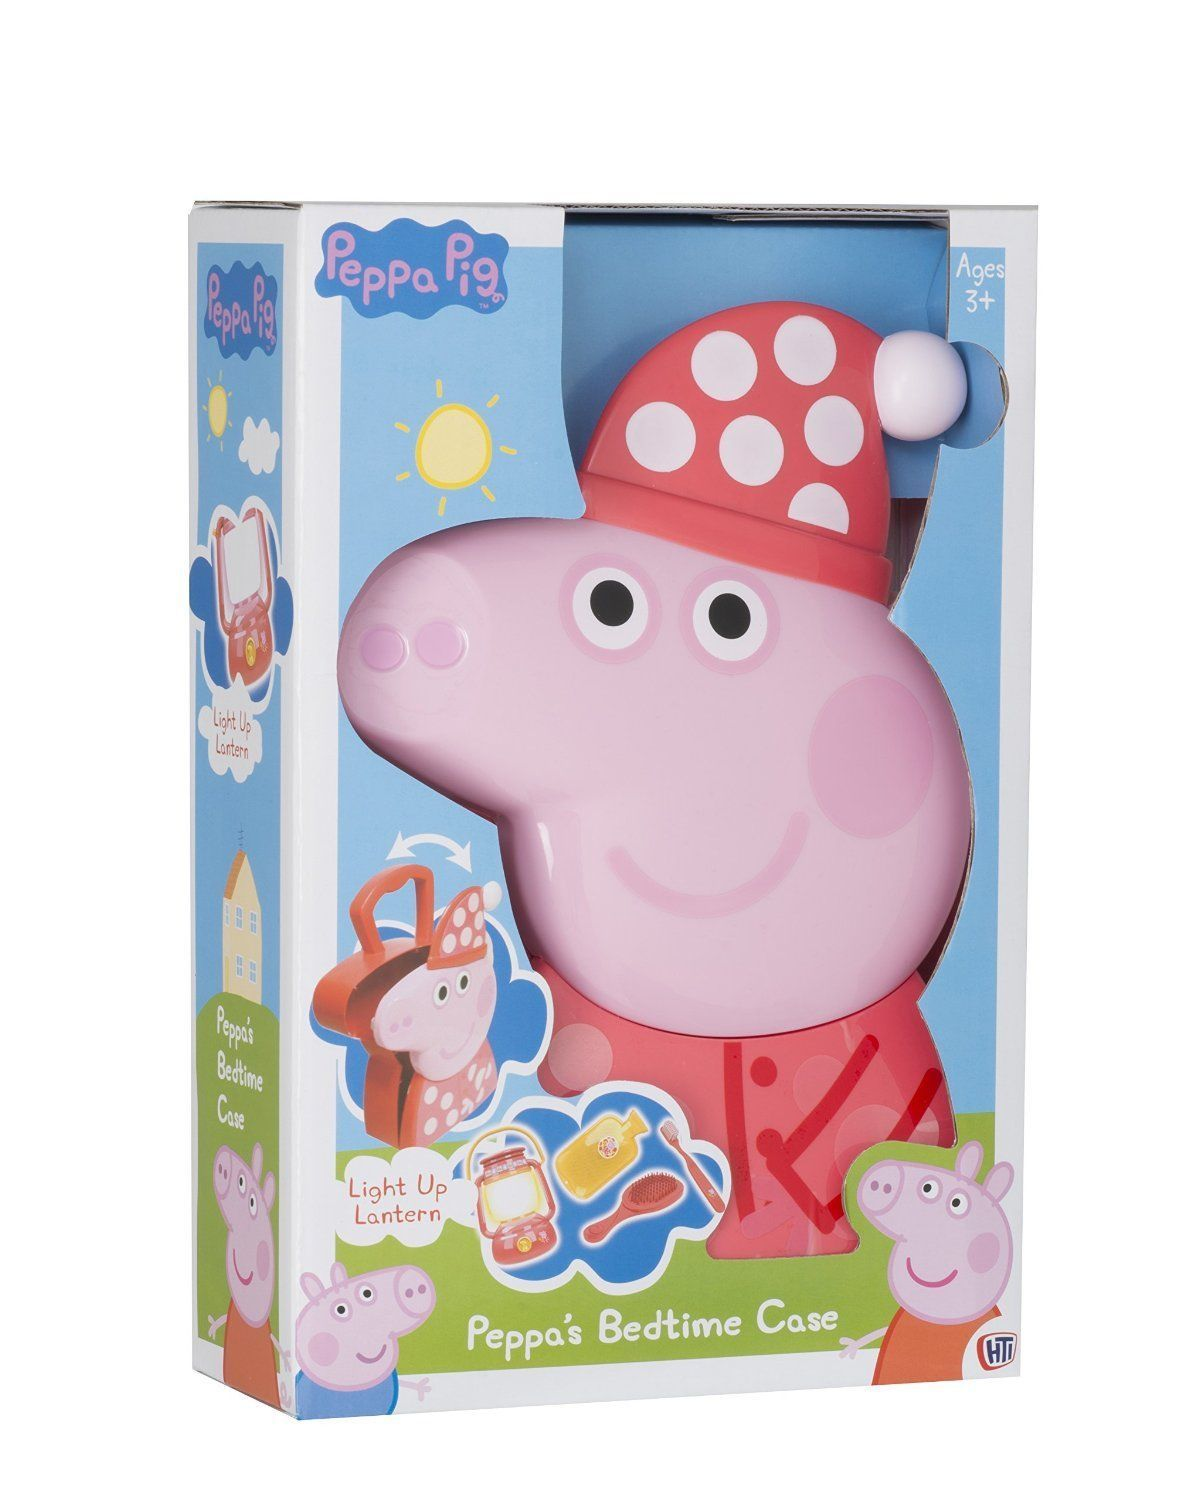 Glow Toys For Bedtime Peppa Pig Peppa S Bedtime Case